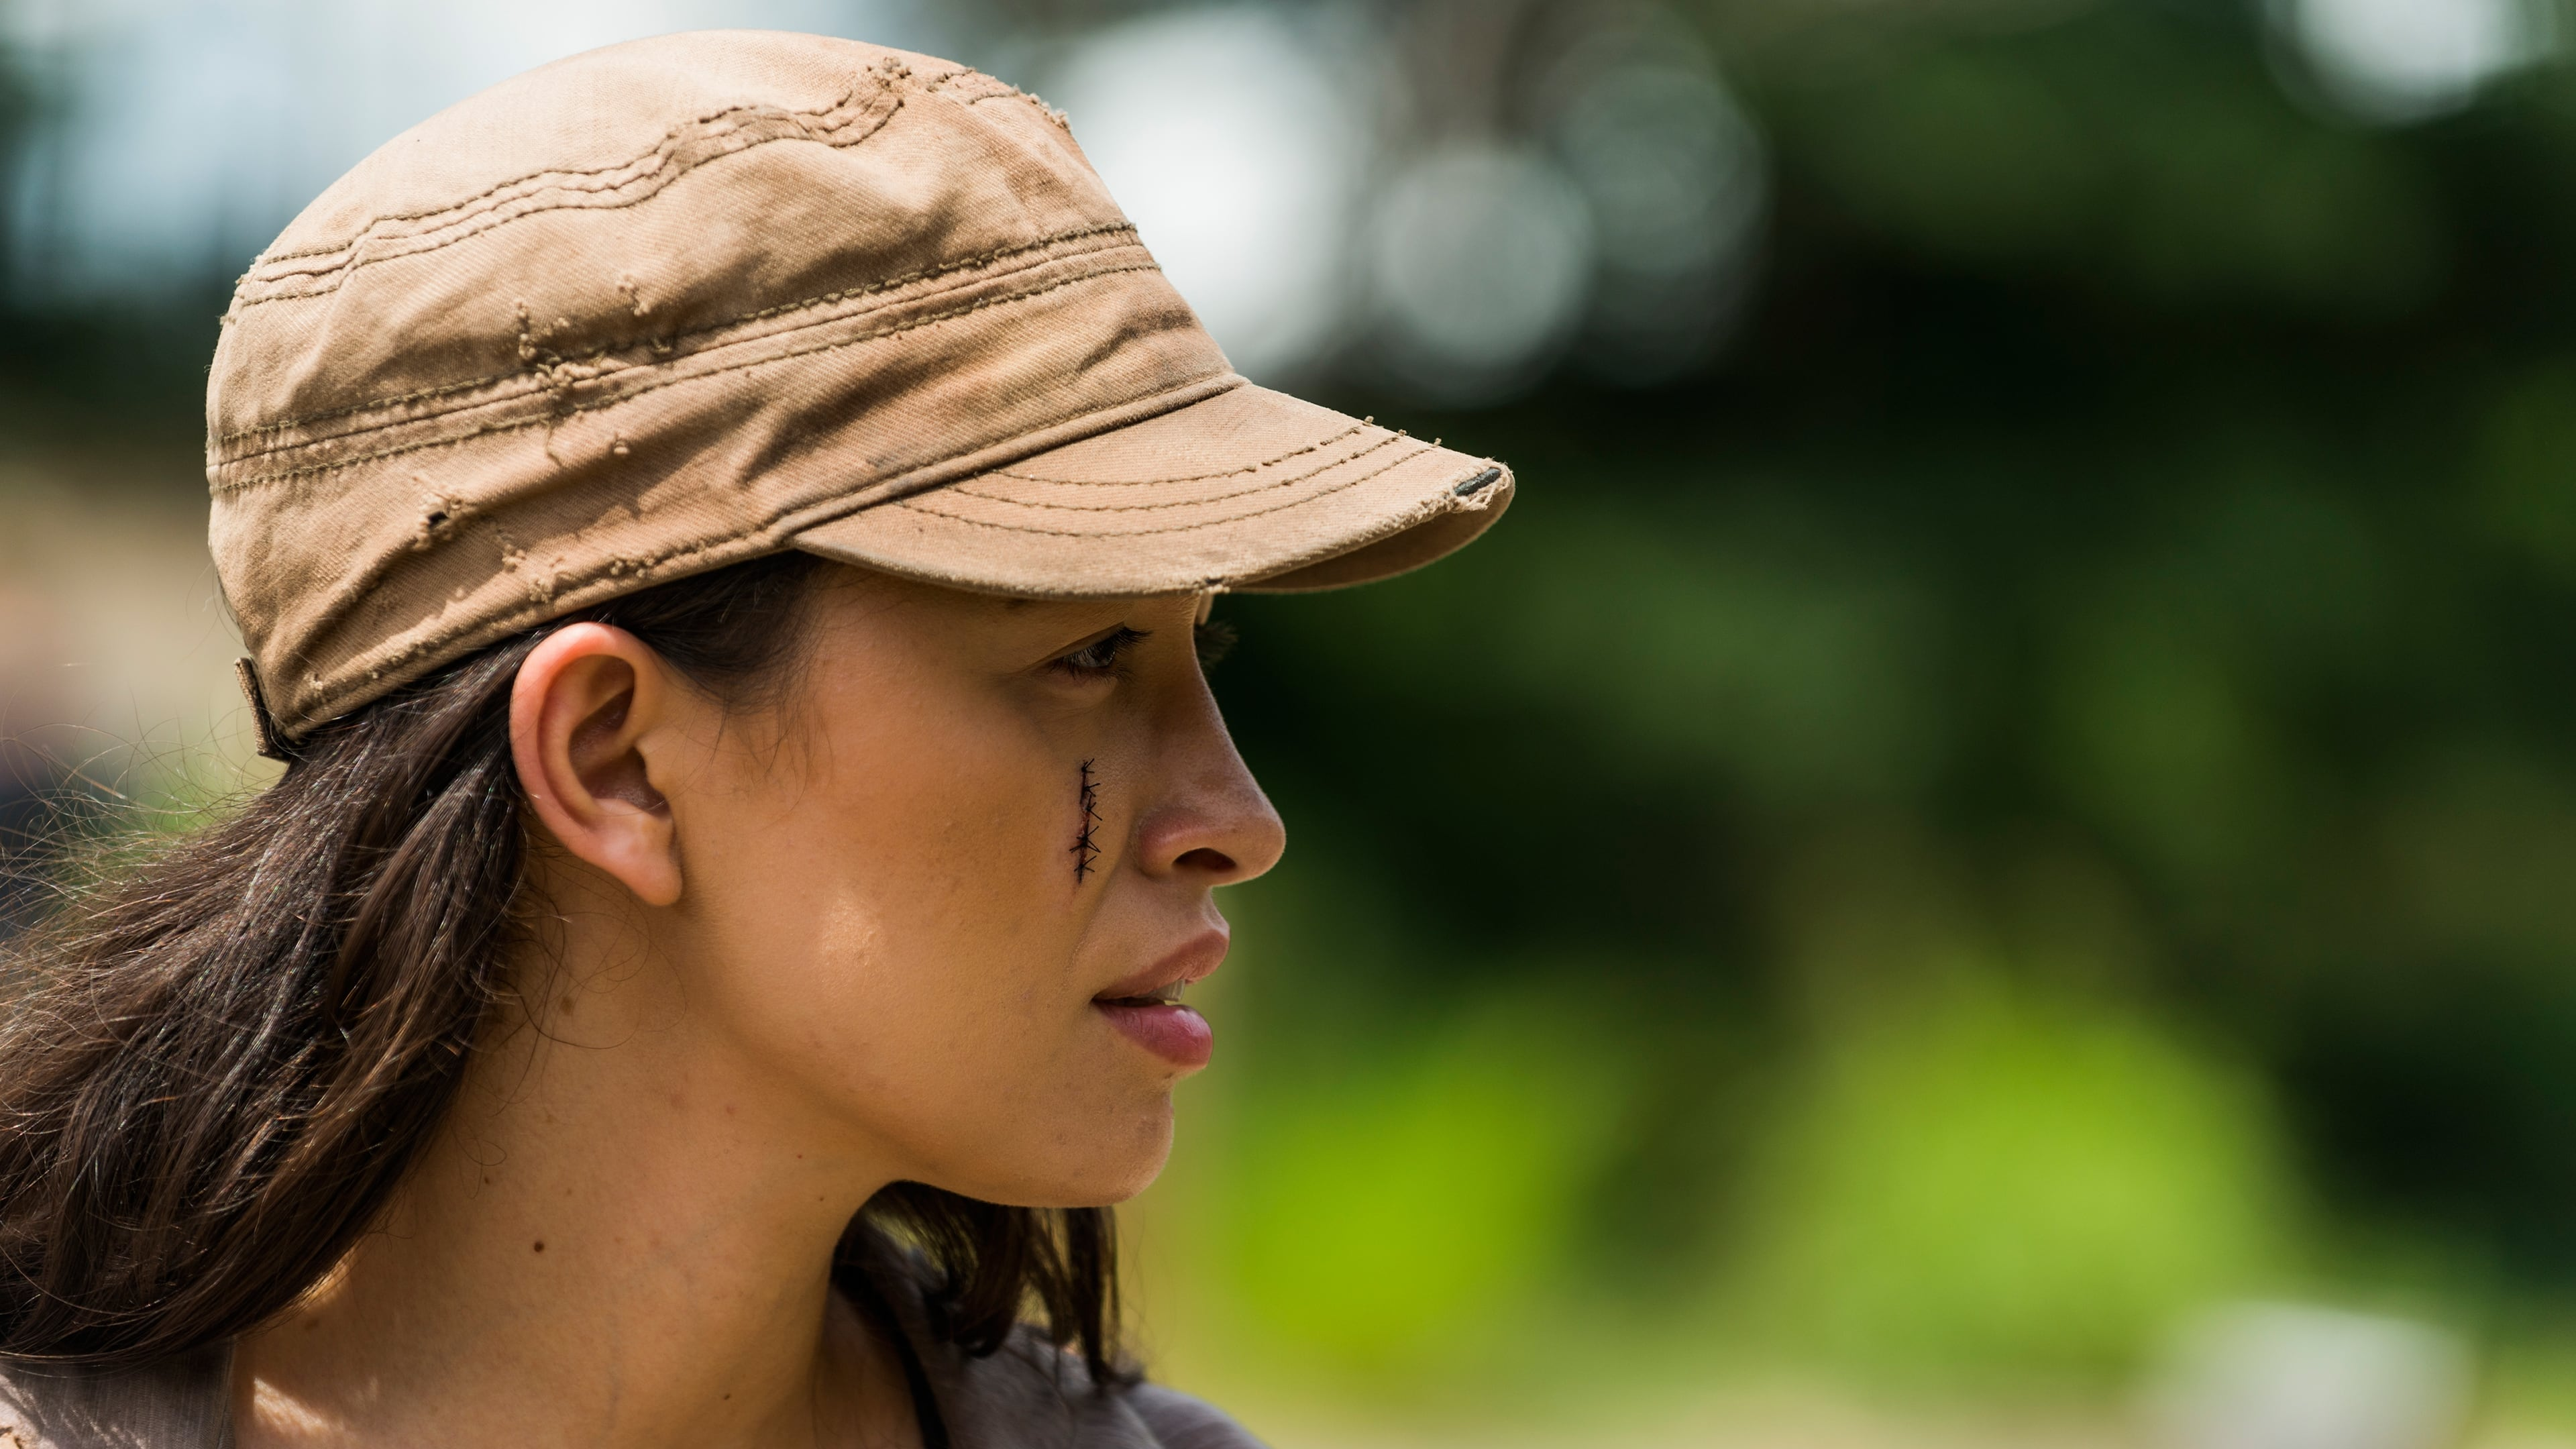 the walking dead s06e05 lektor pl